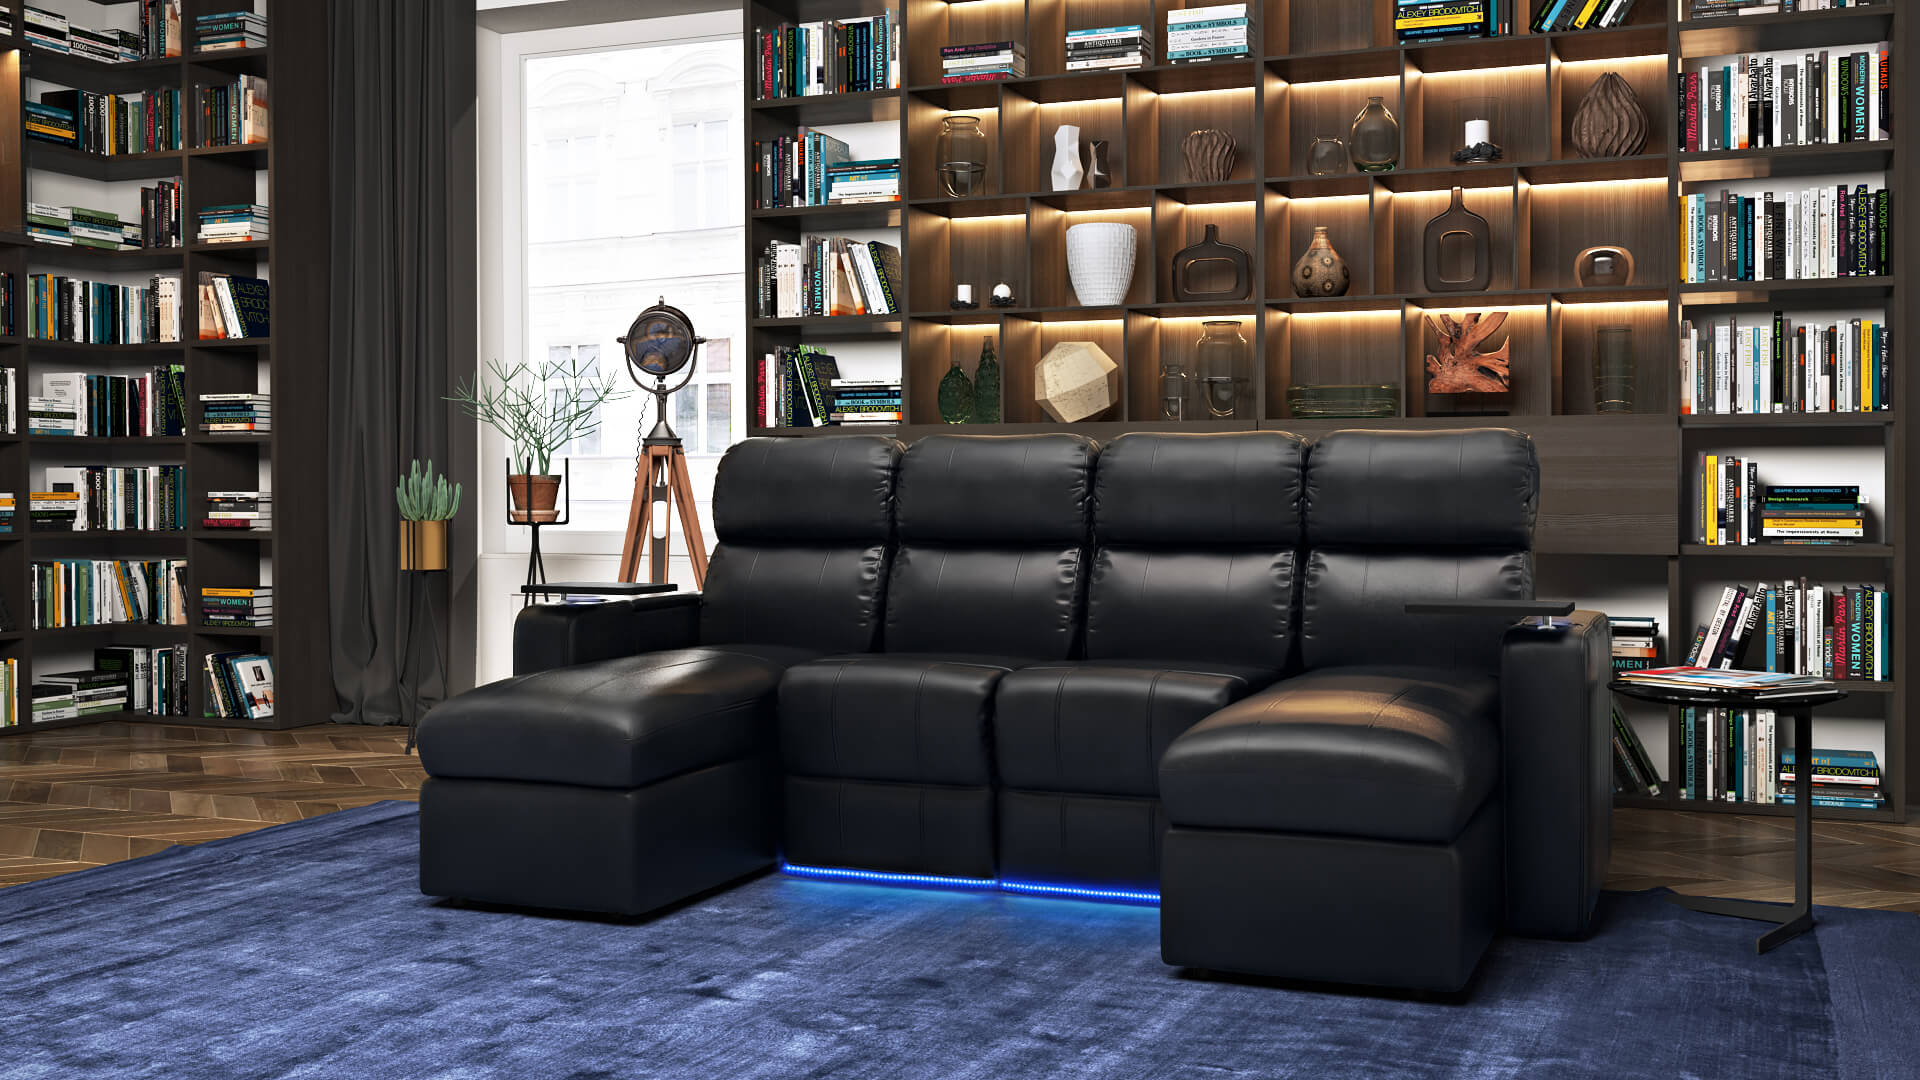 Photoreal Product Rendering for Sofa